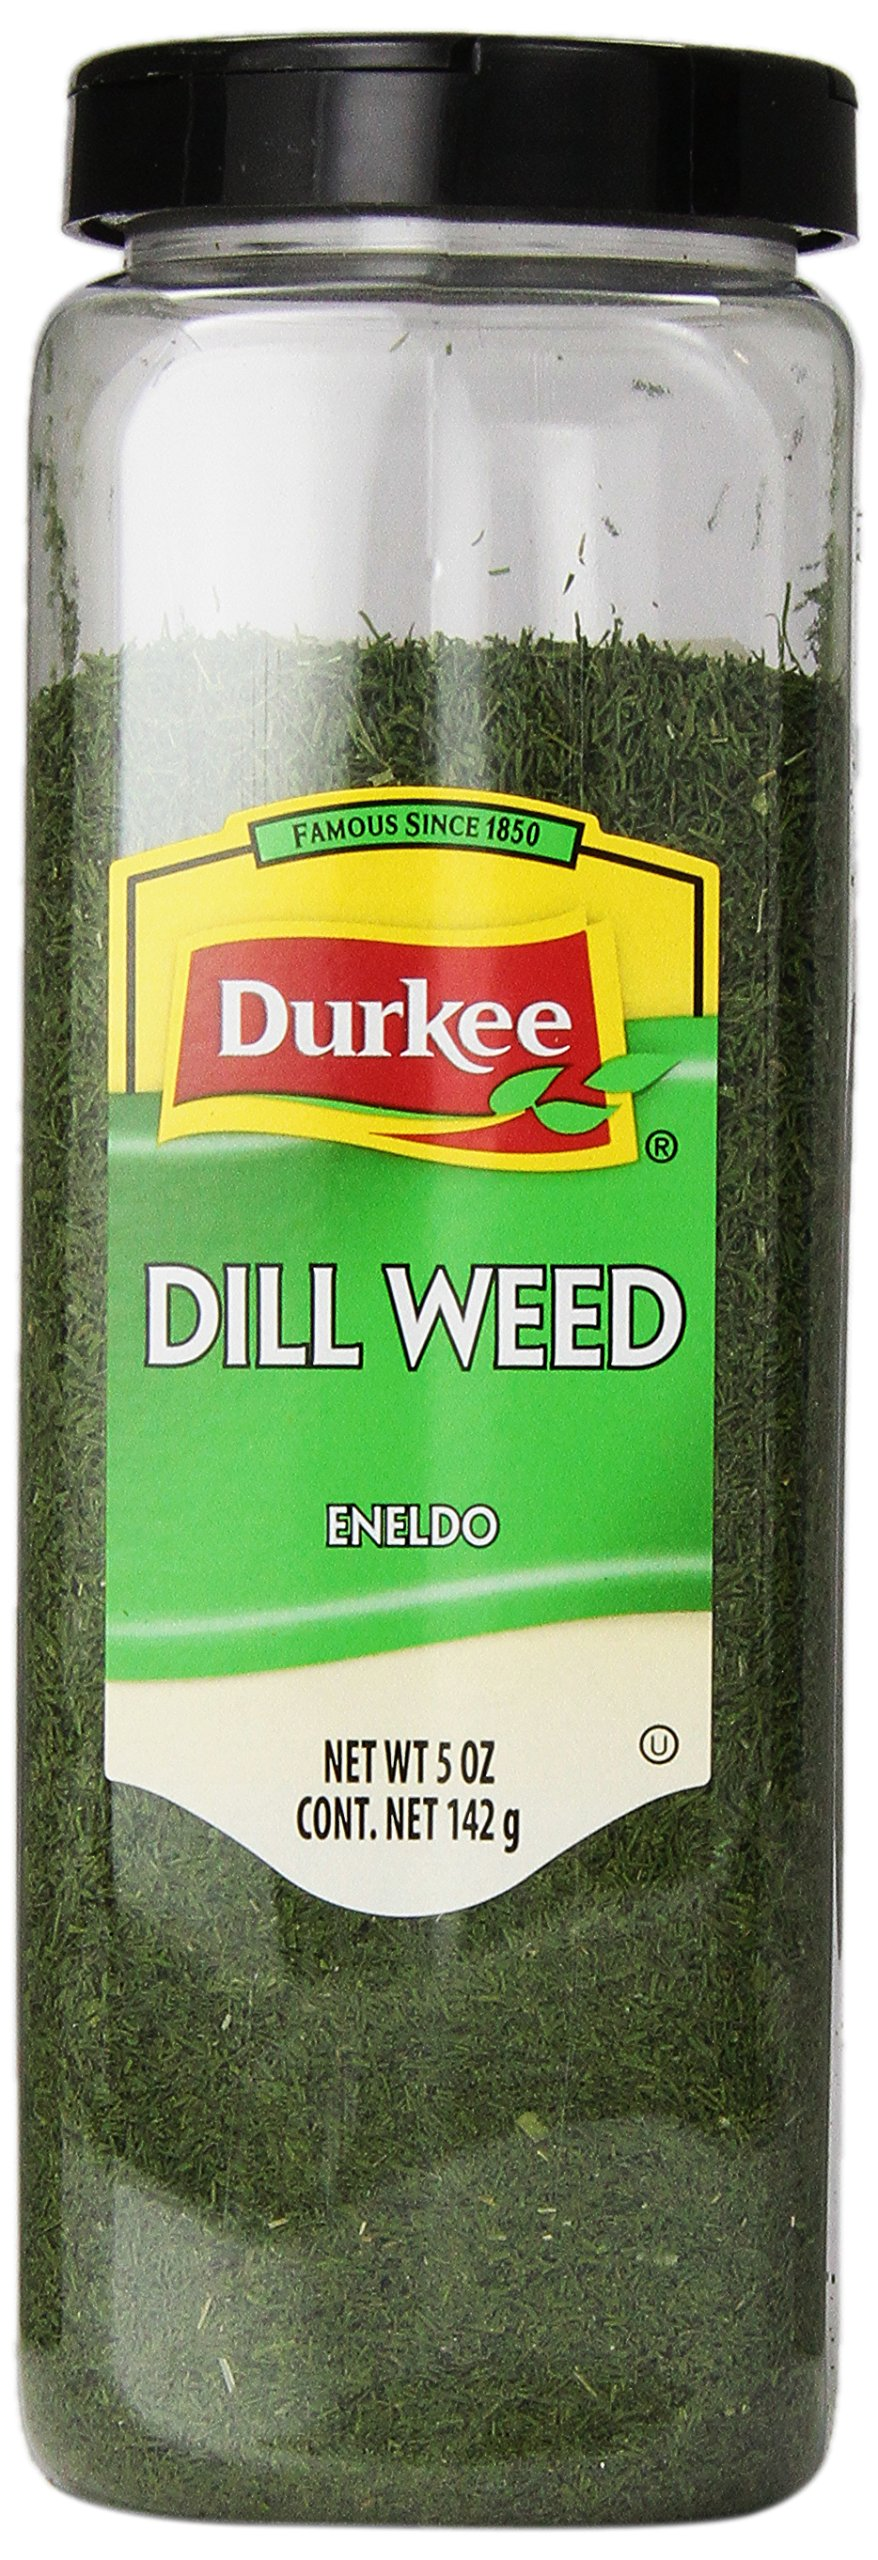 Durkee Dill Weed, 5-Ounce Containers (Pack of 2)